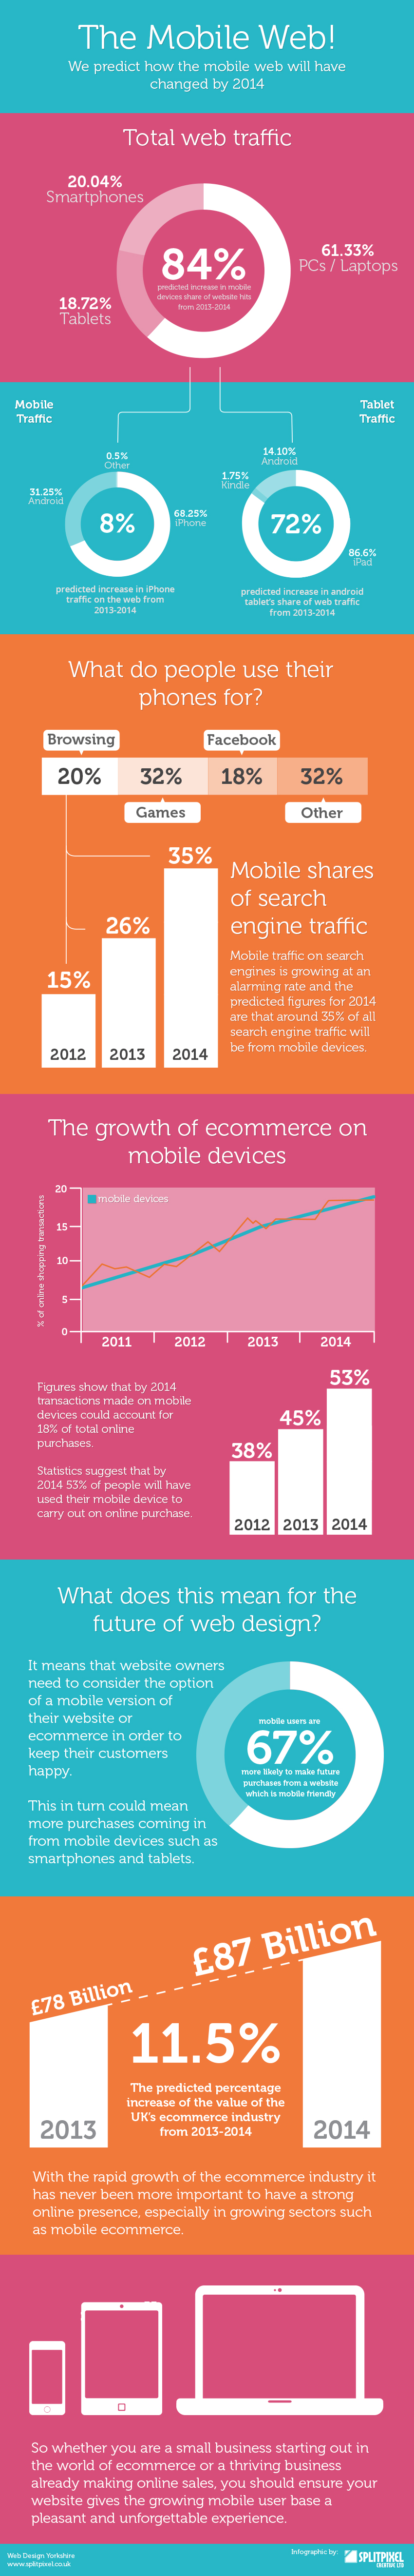 predictions-for-mobile-ecommerce-2014_51ed41eb520db